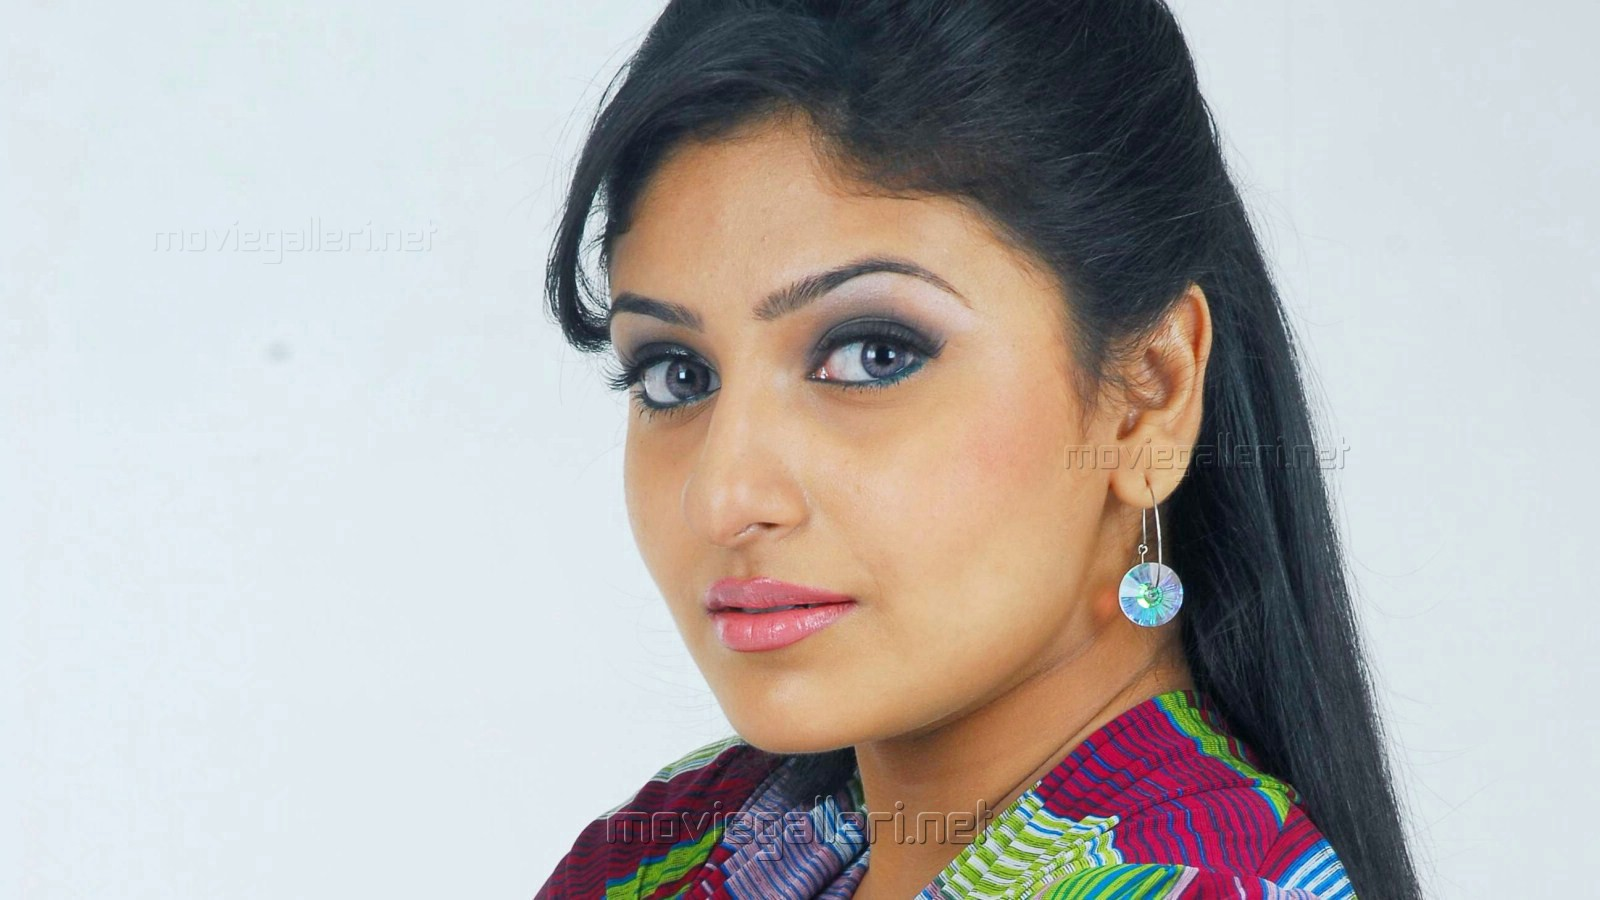 Tamil Actresses Wallpapers 11